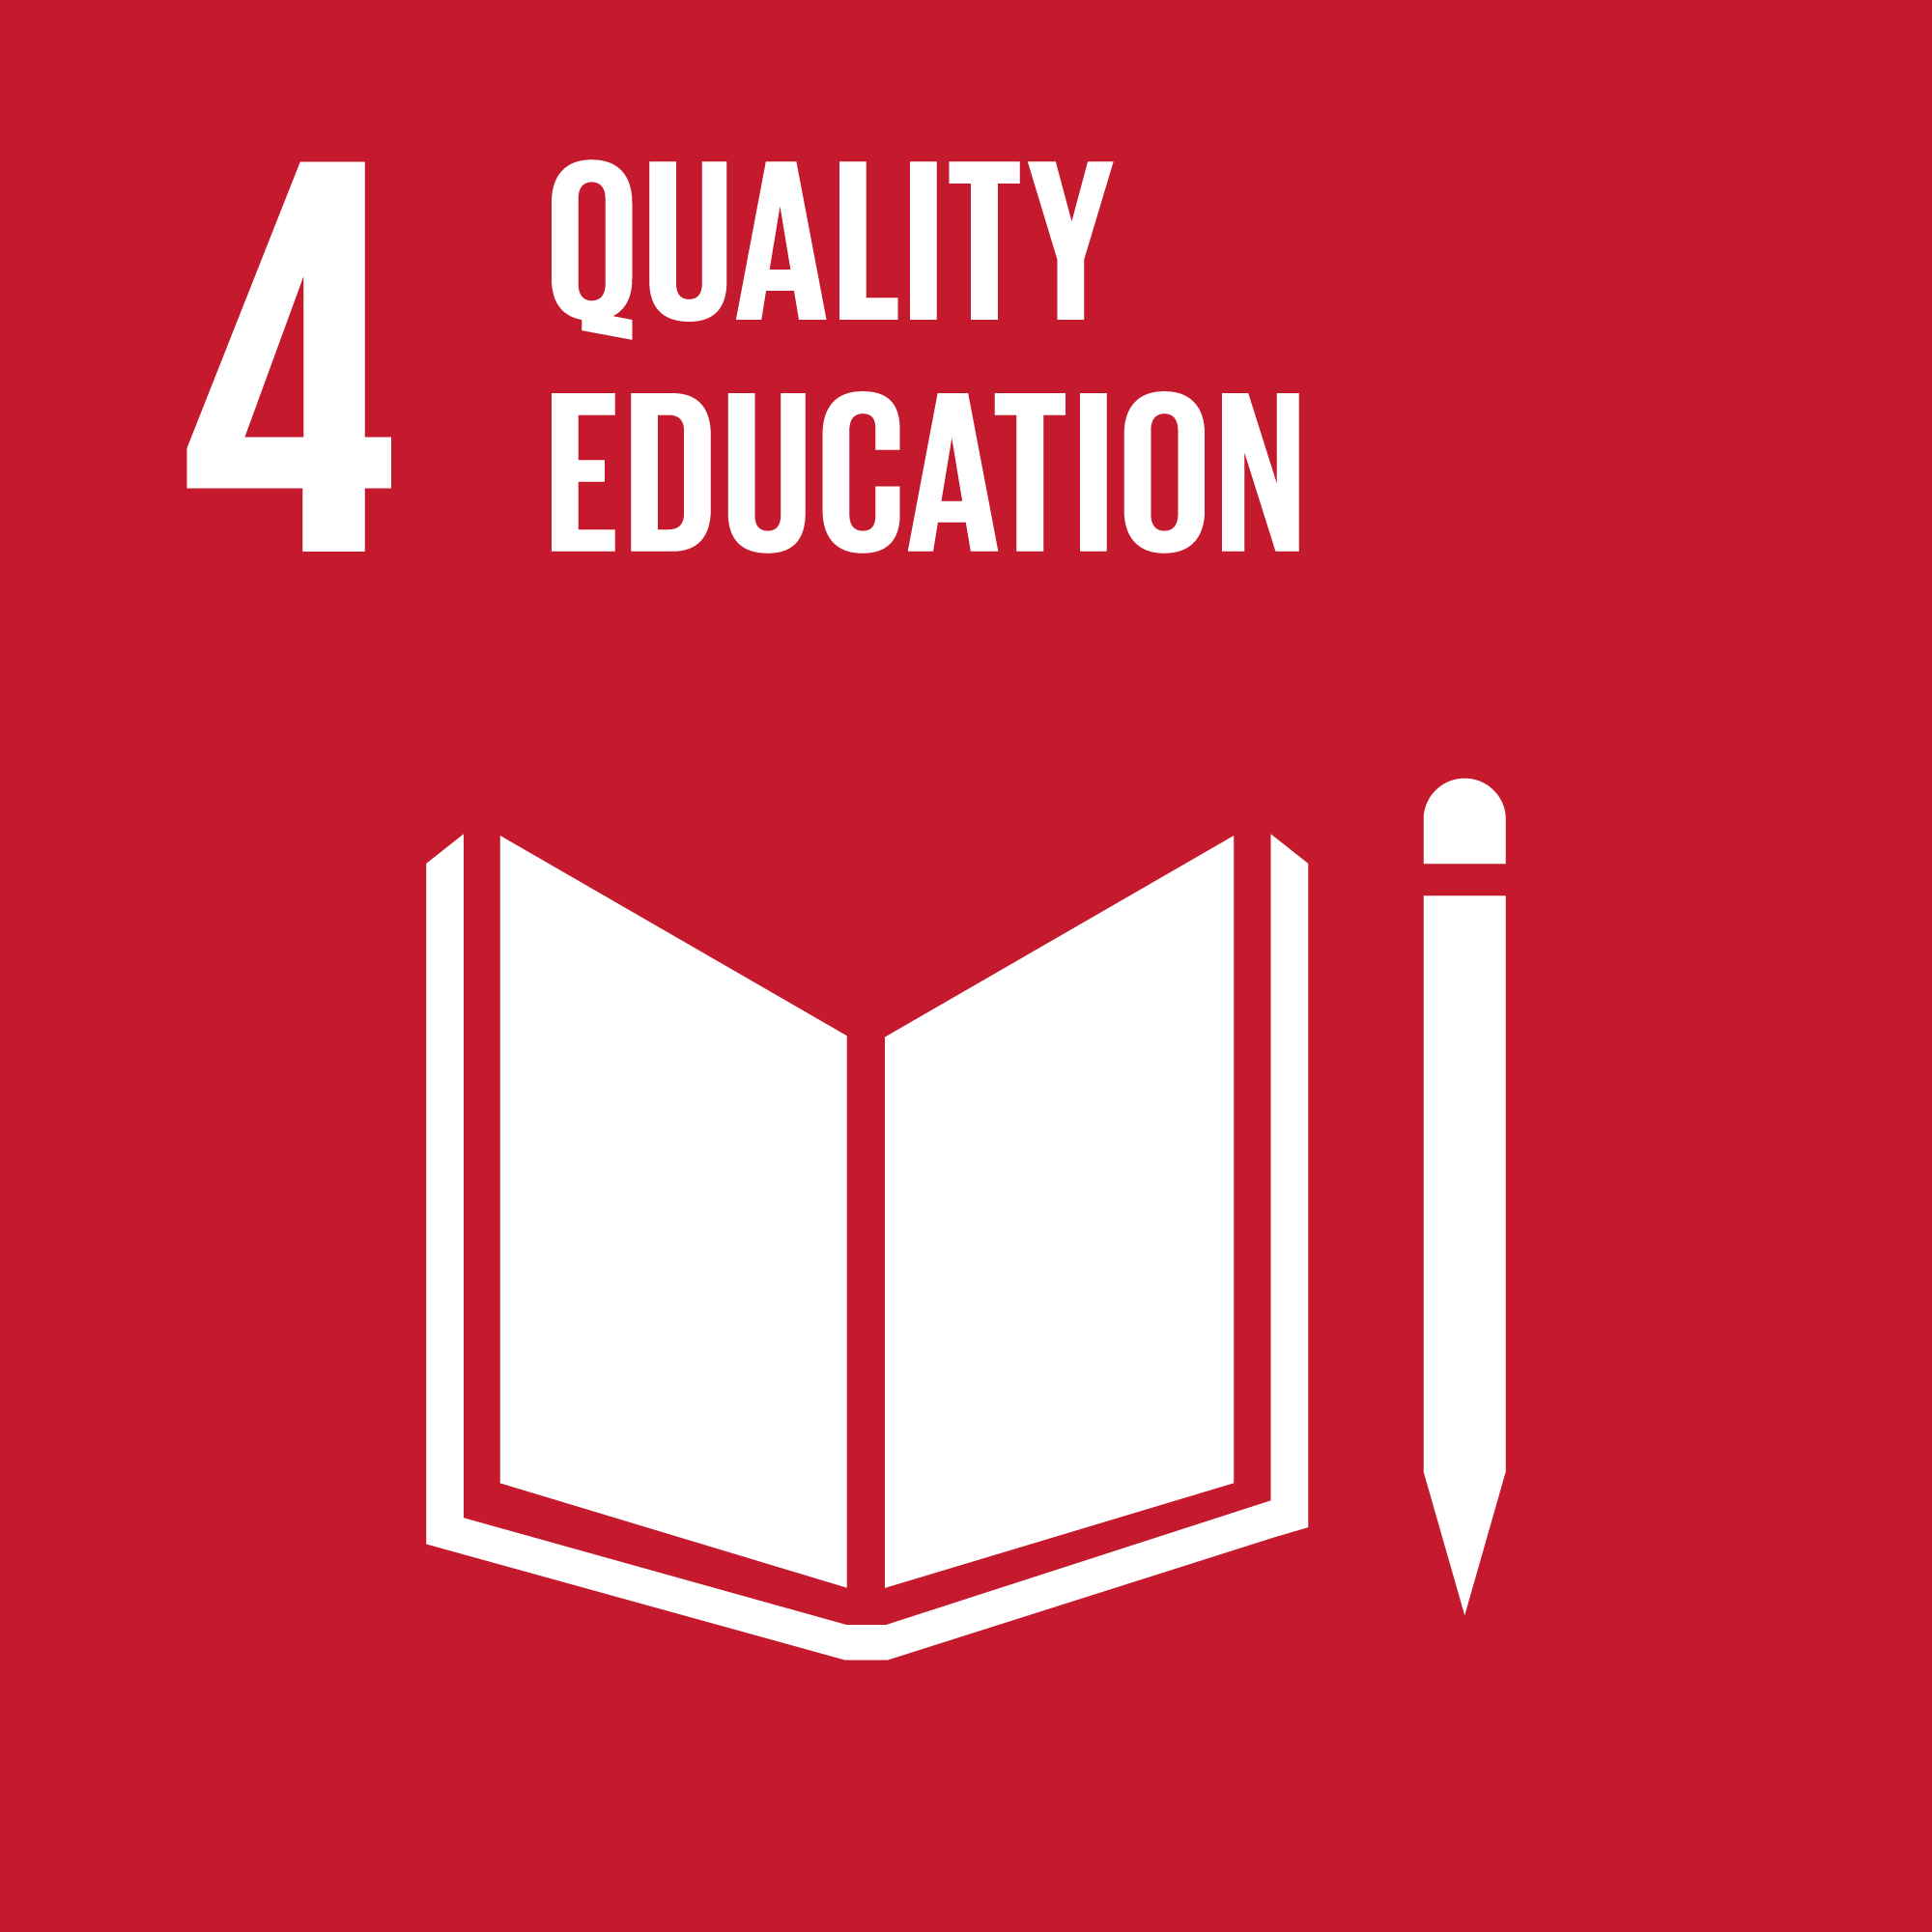 United Nations Sustainable Development Goal 4